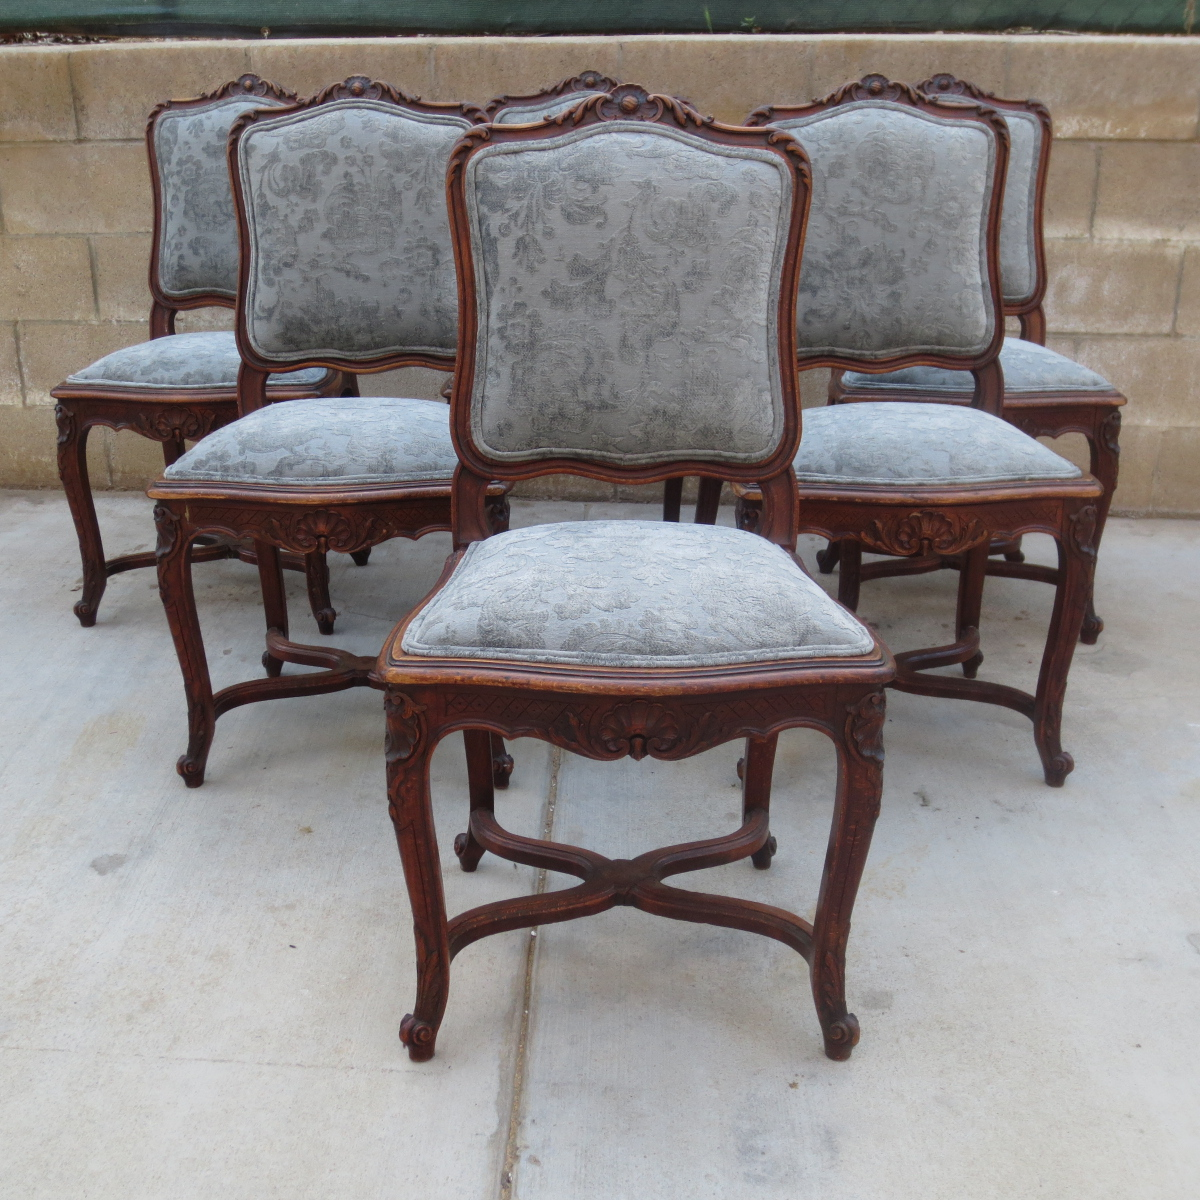 antique dining chairs best antique wooden dining chairs about remodel simple home designing ideas DTVRWQQ